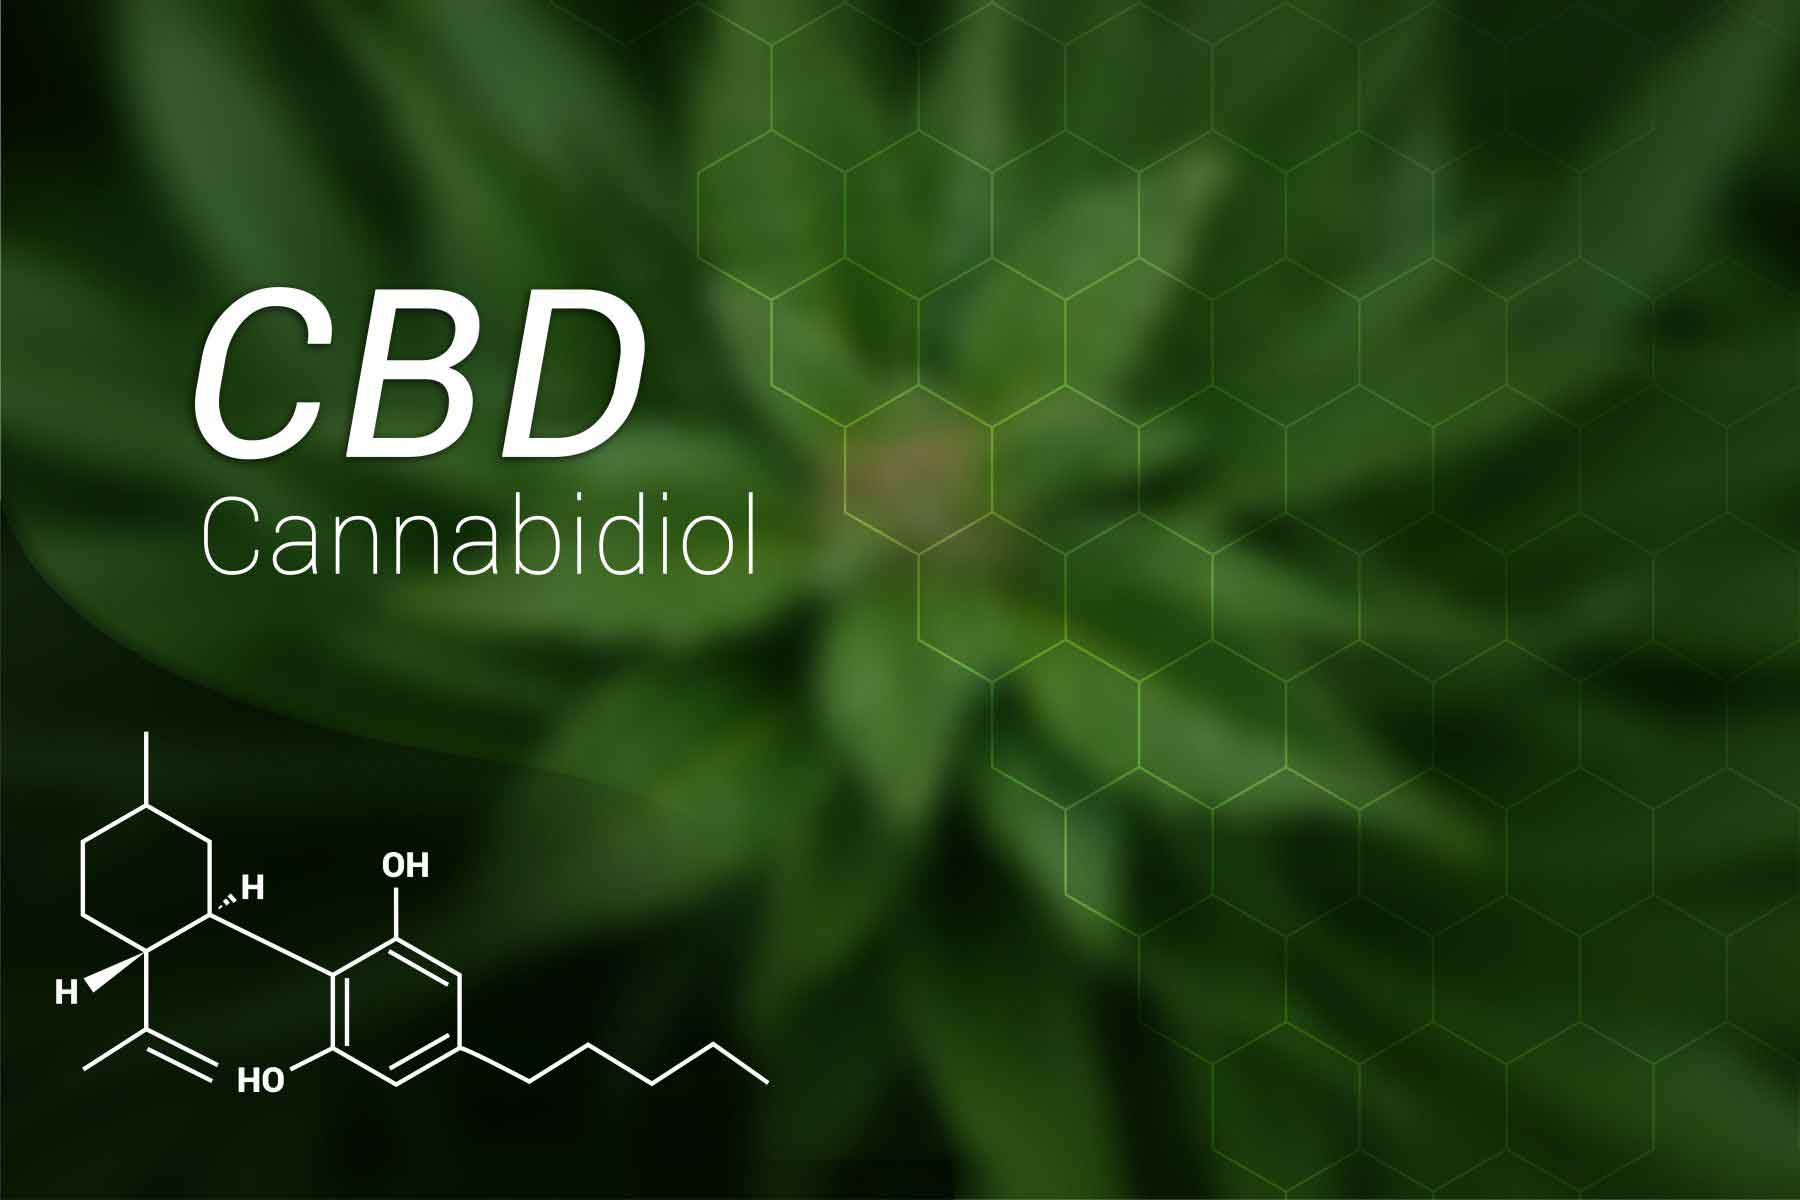 Compliance: What Can We Say or Not Say About CBD? 1